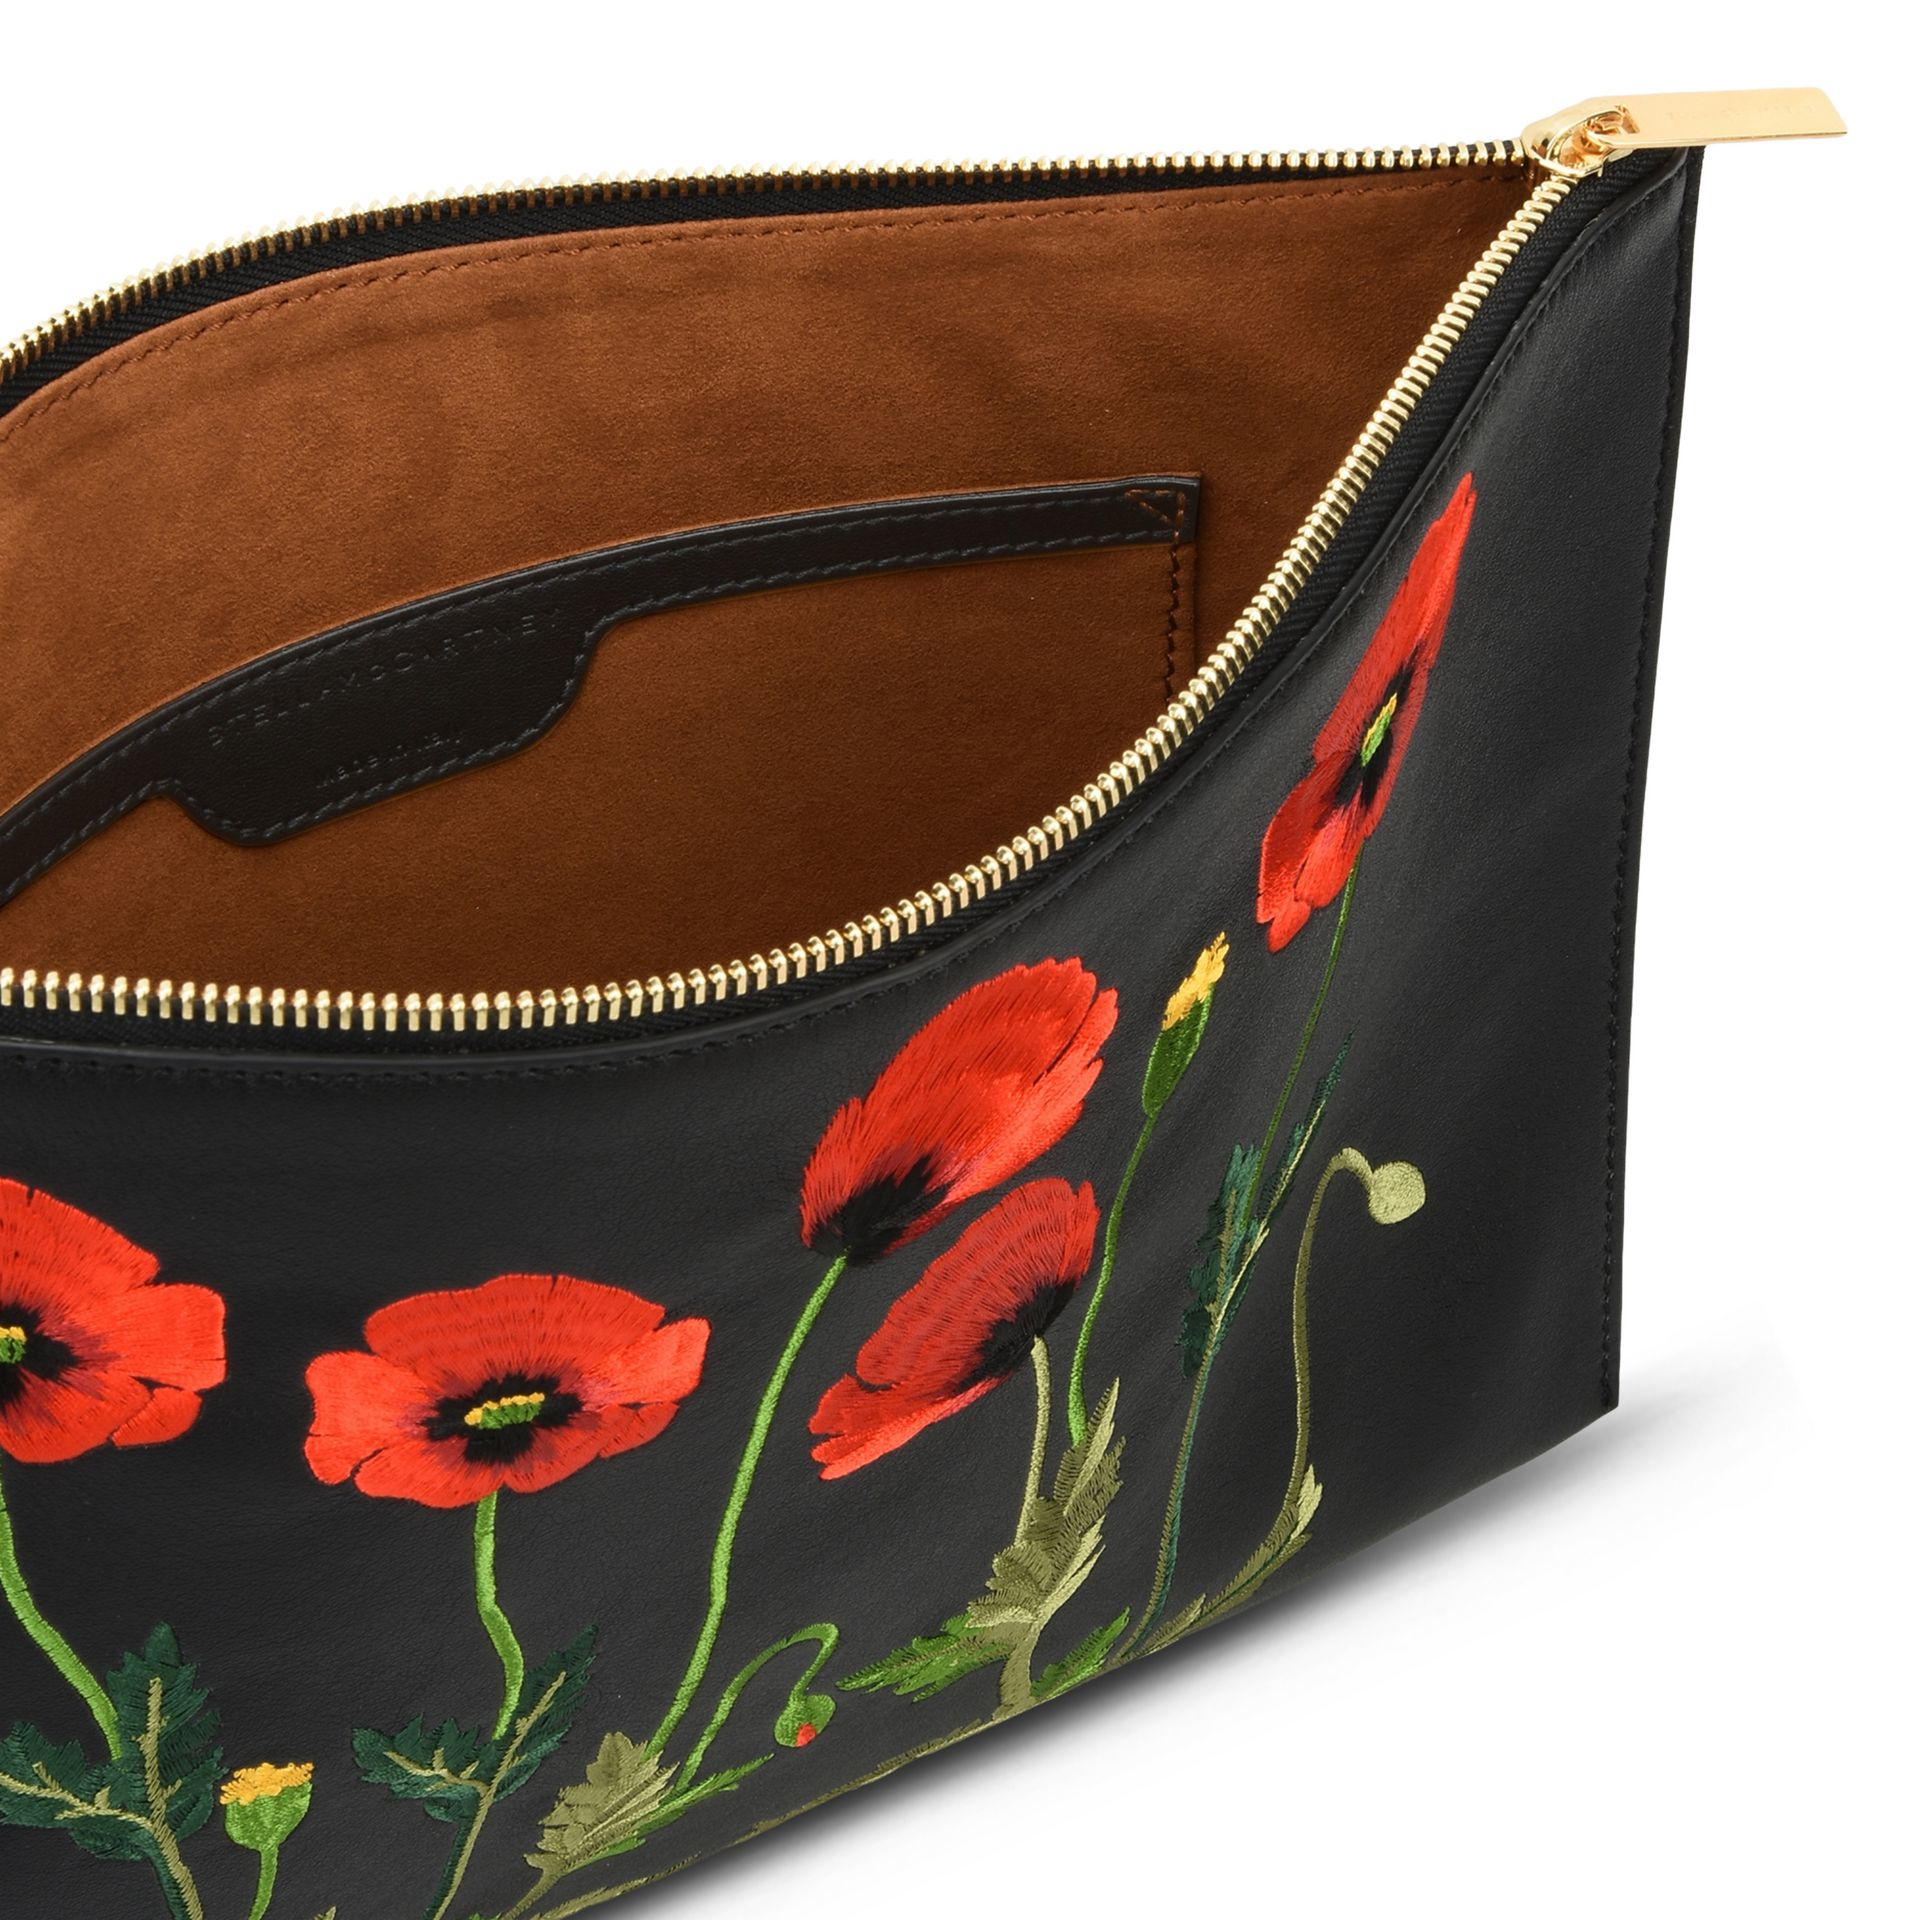 Stella mccartney Botanical Embroidery Clutch Bag in Black | Lyst